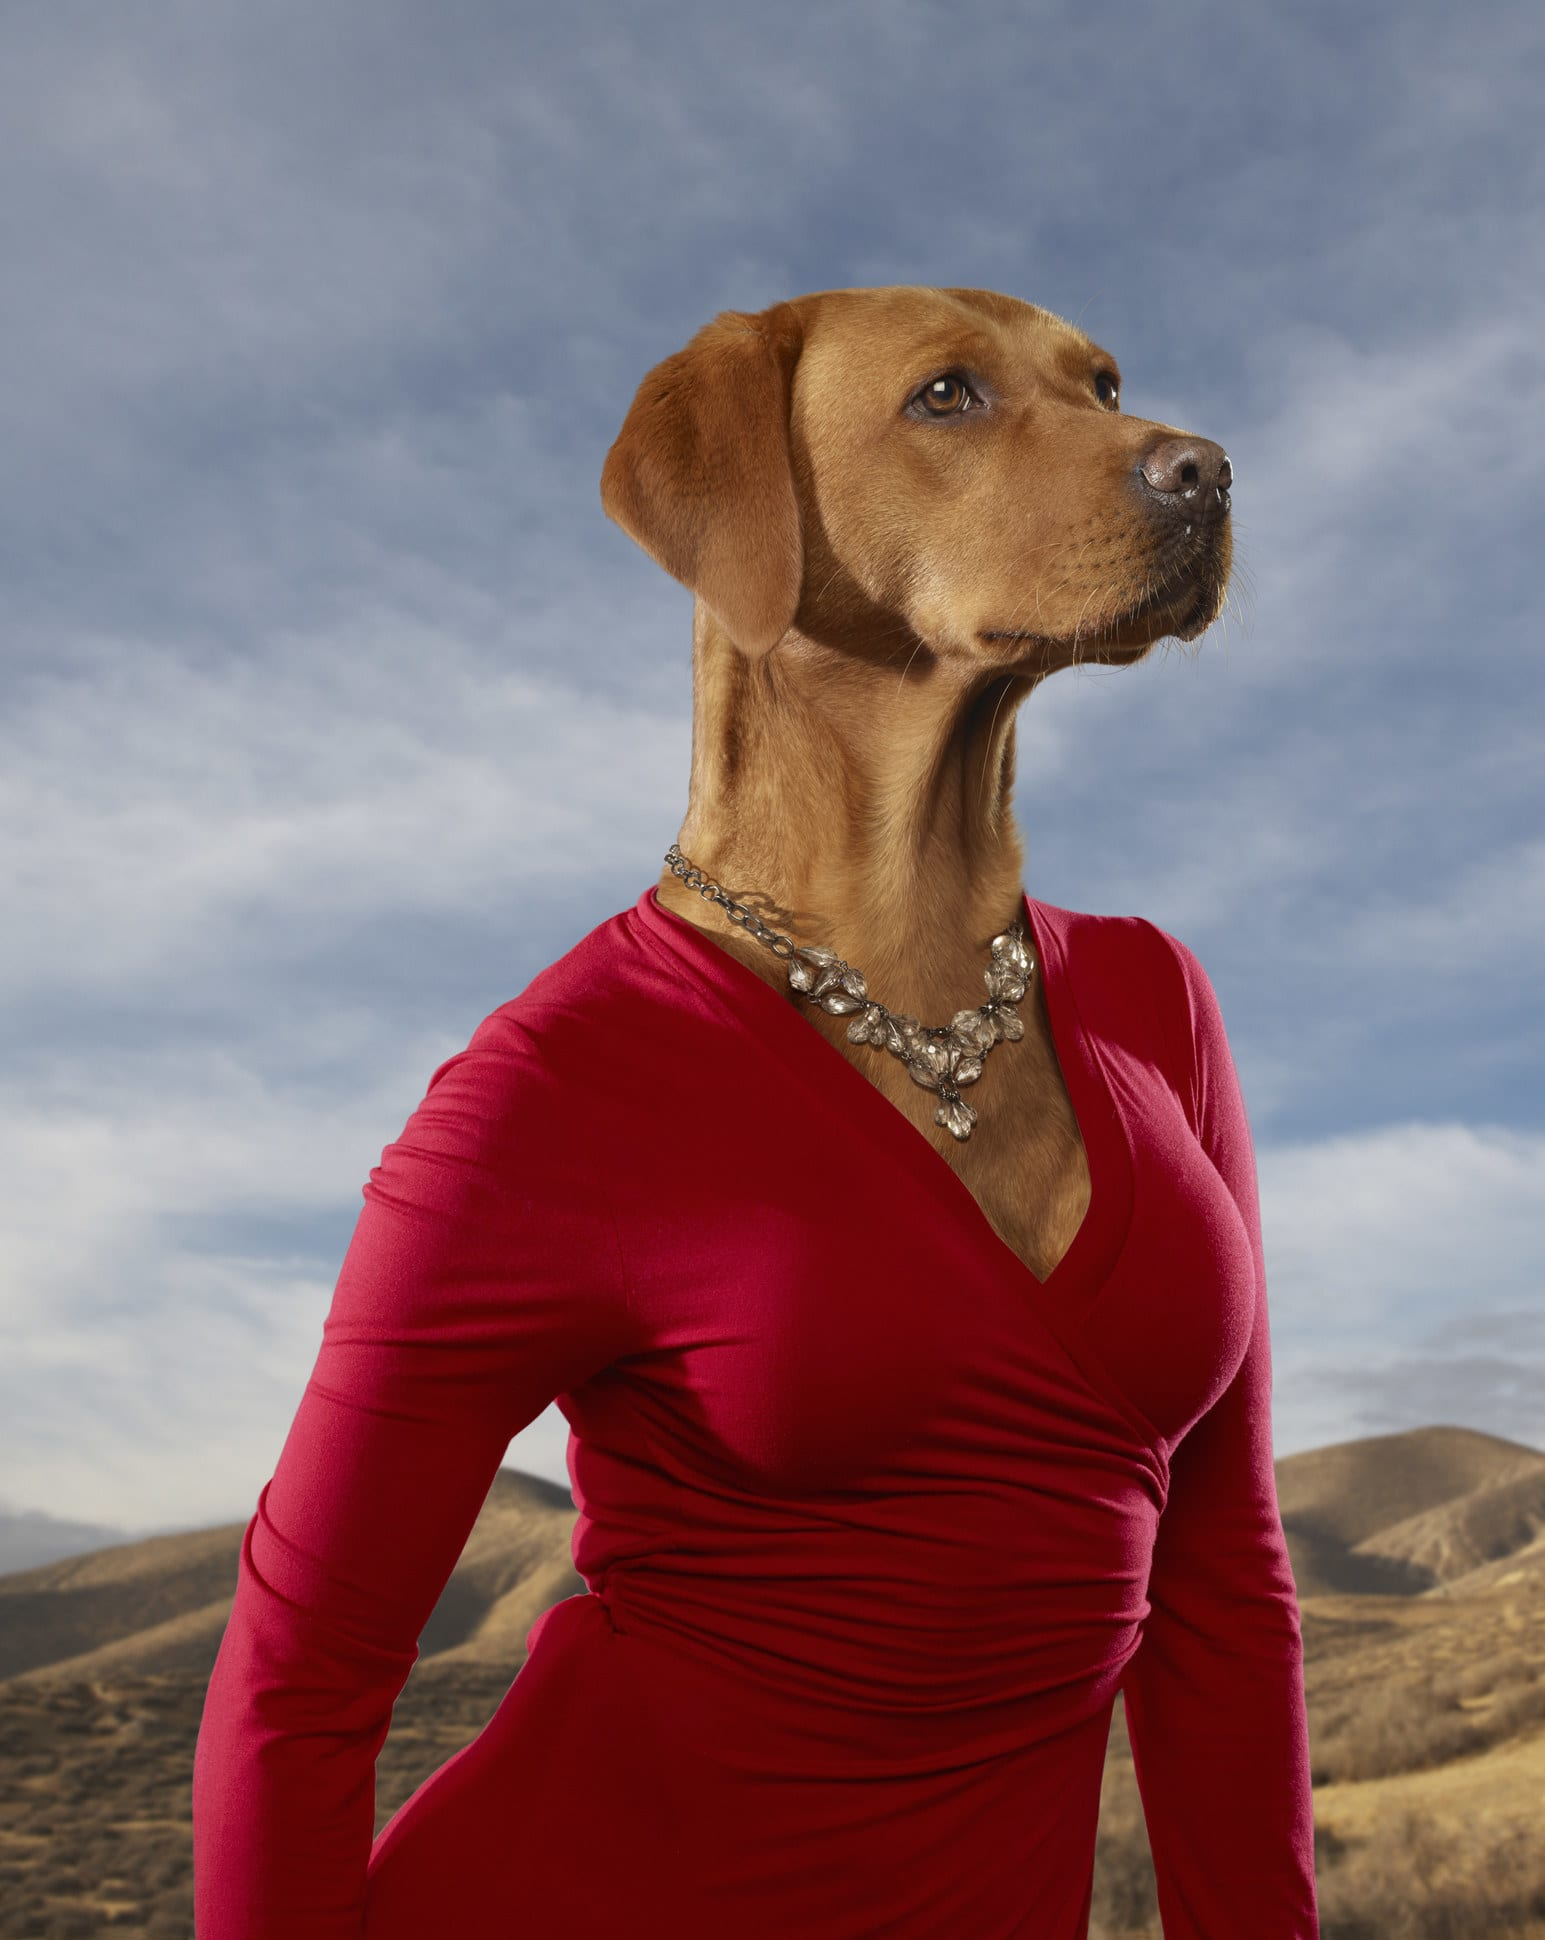 a dog in a red dress with a human body